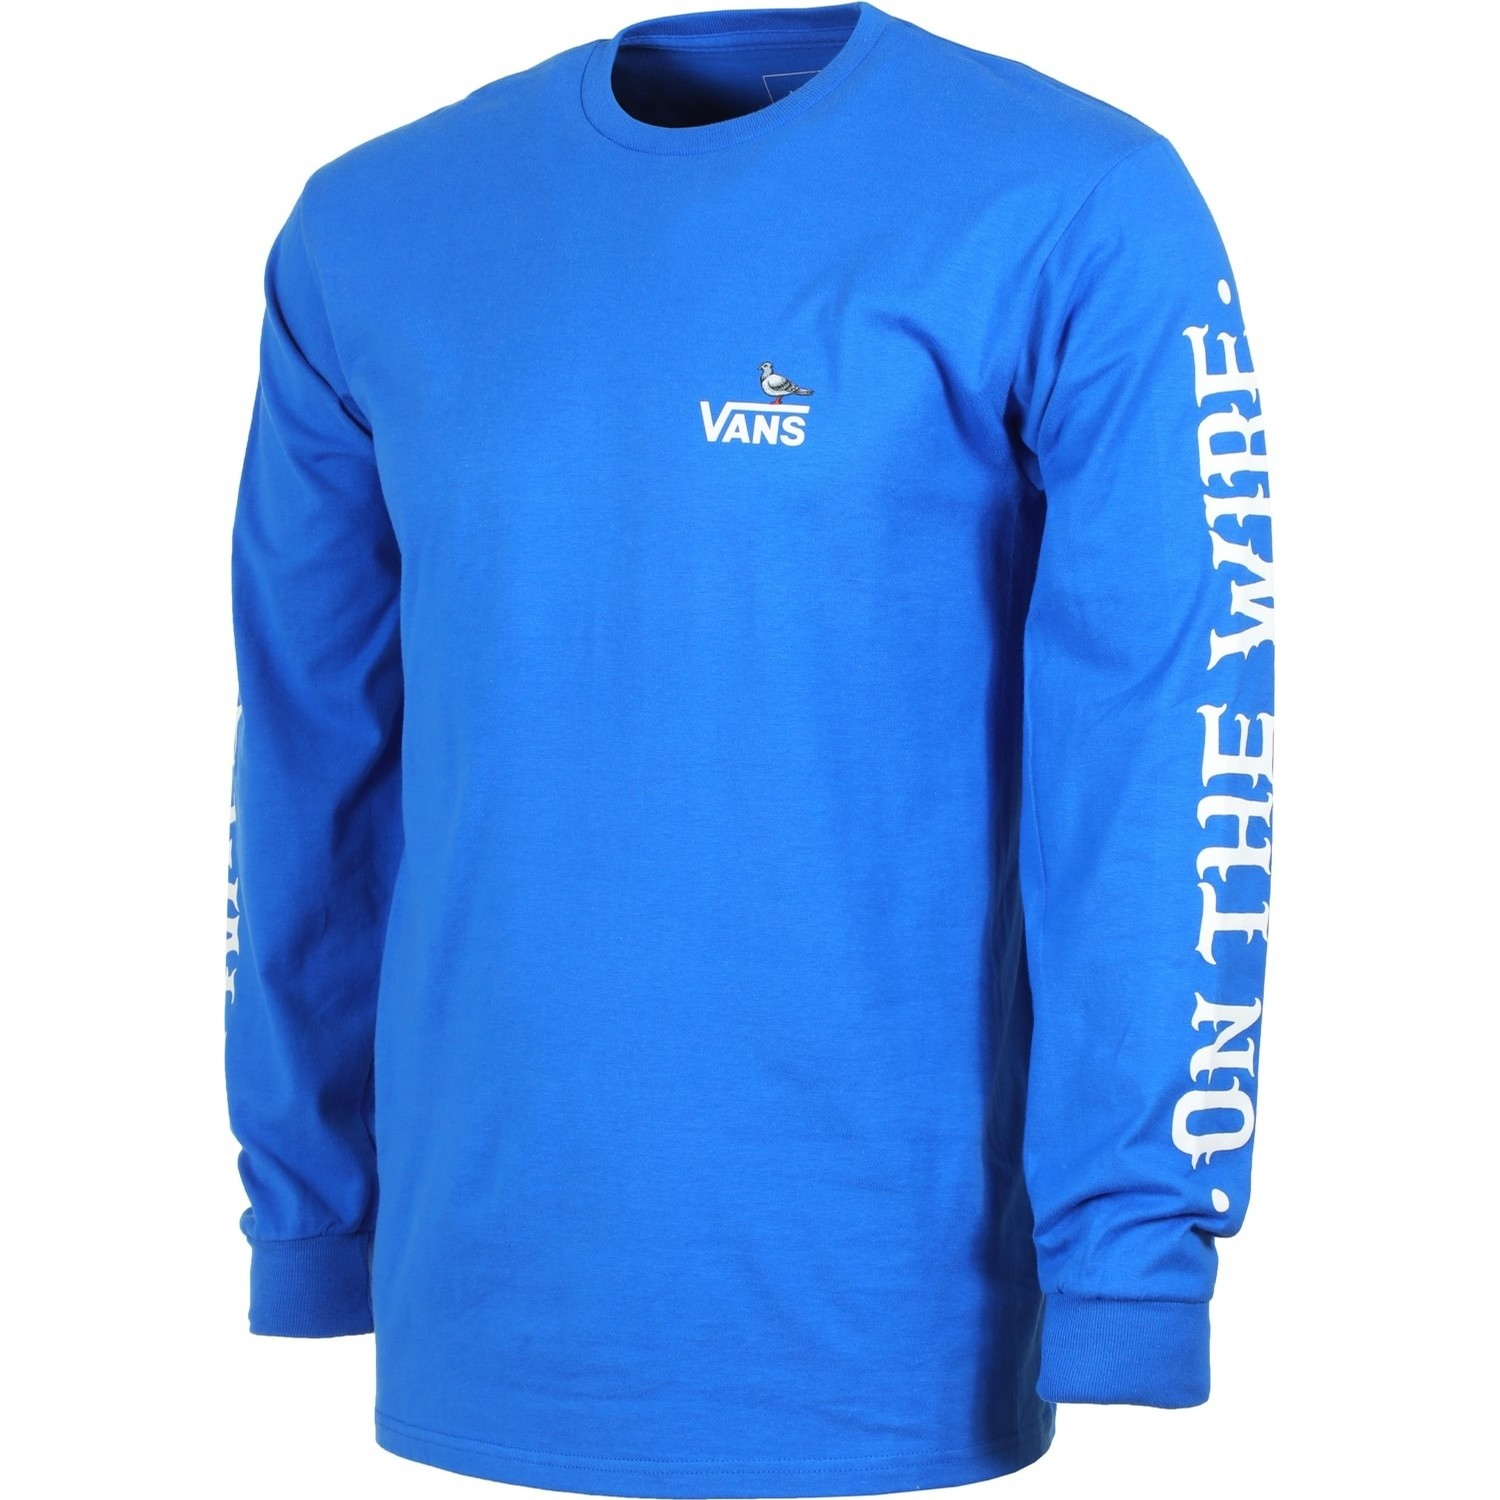 Vans X Antihero On The Wire L/S Tee (Royal Blue)